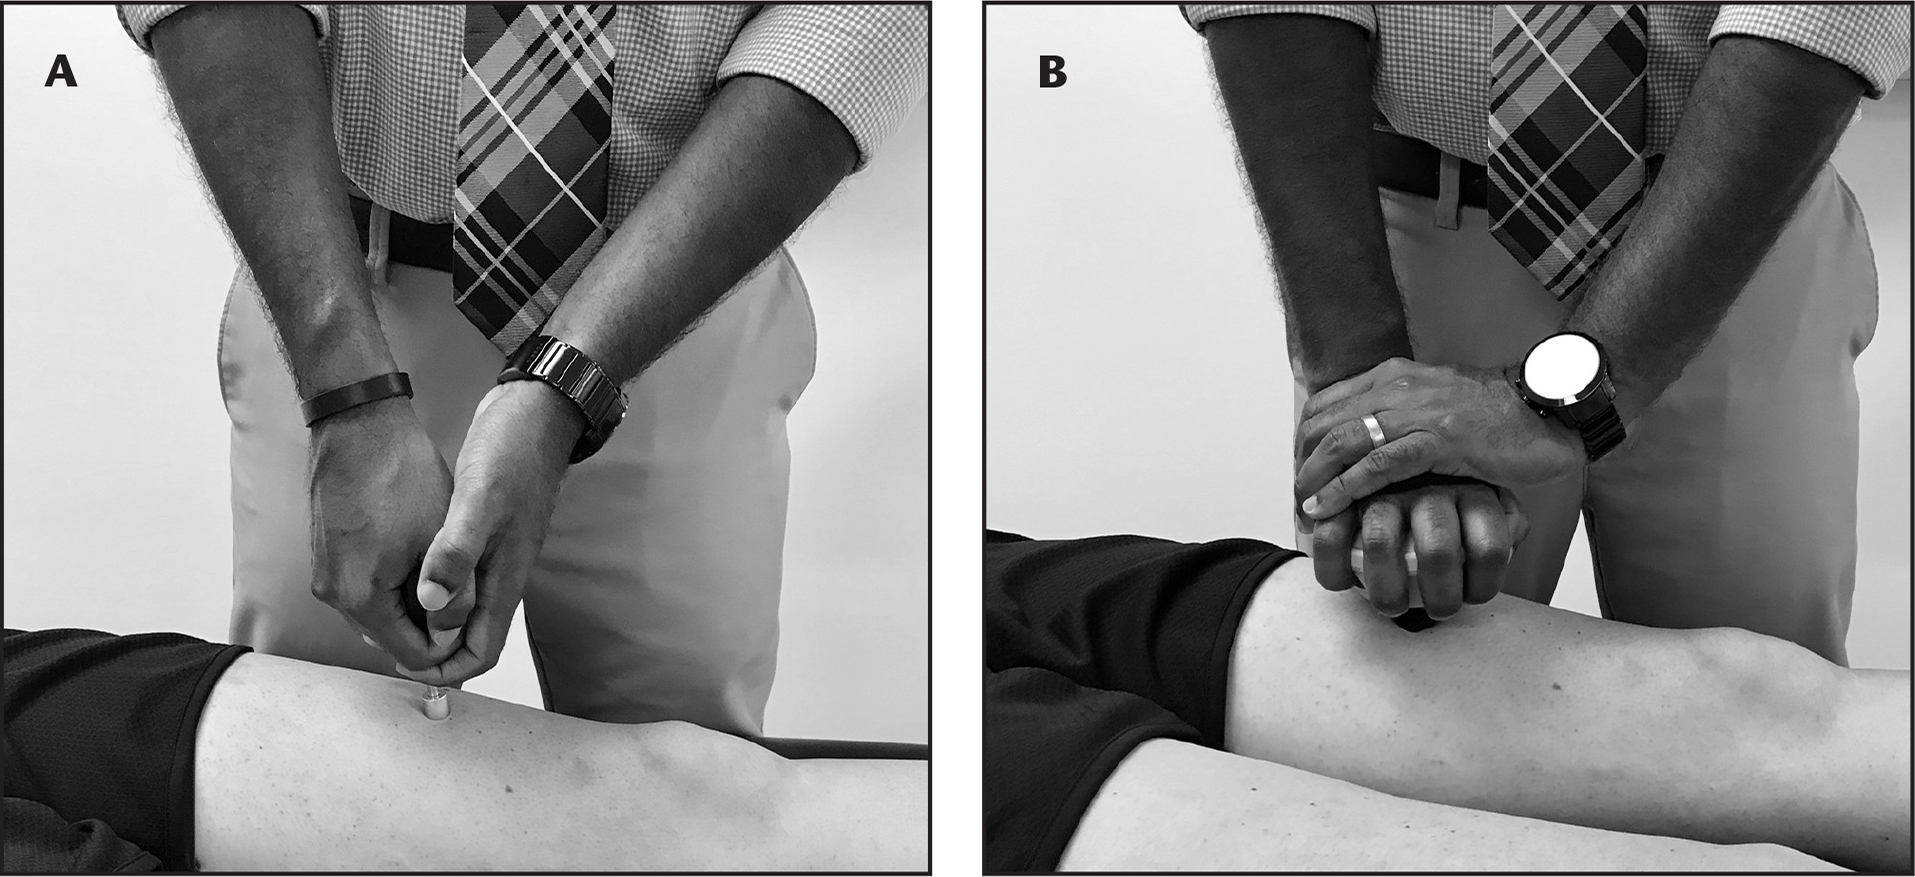 Pressure pain threshold assessment of the quadriceps using a (A) pressure algometer and (B) handheld dynamometer.